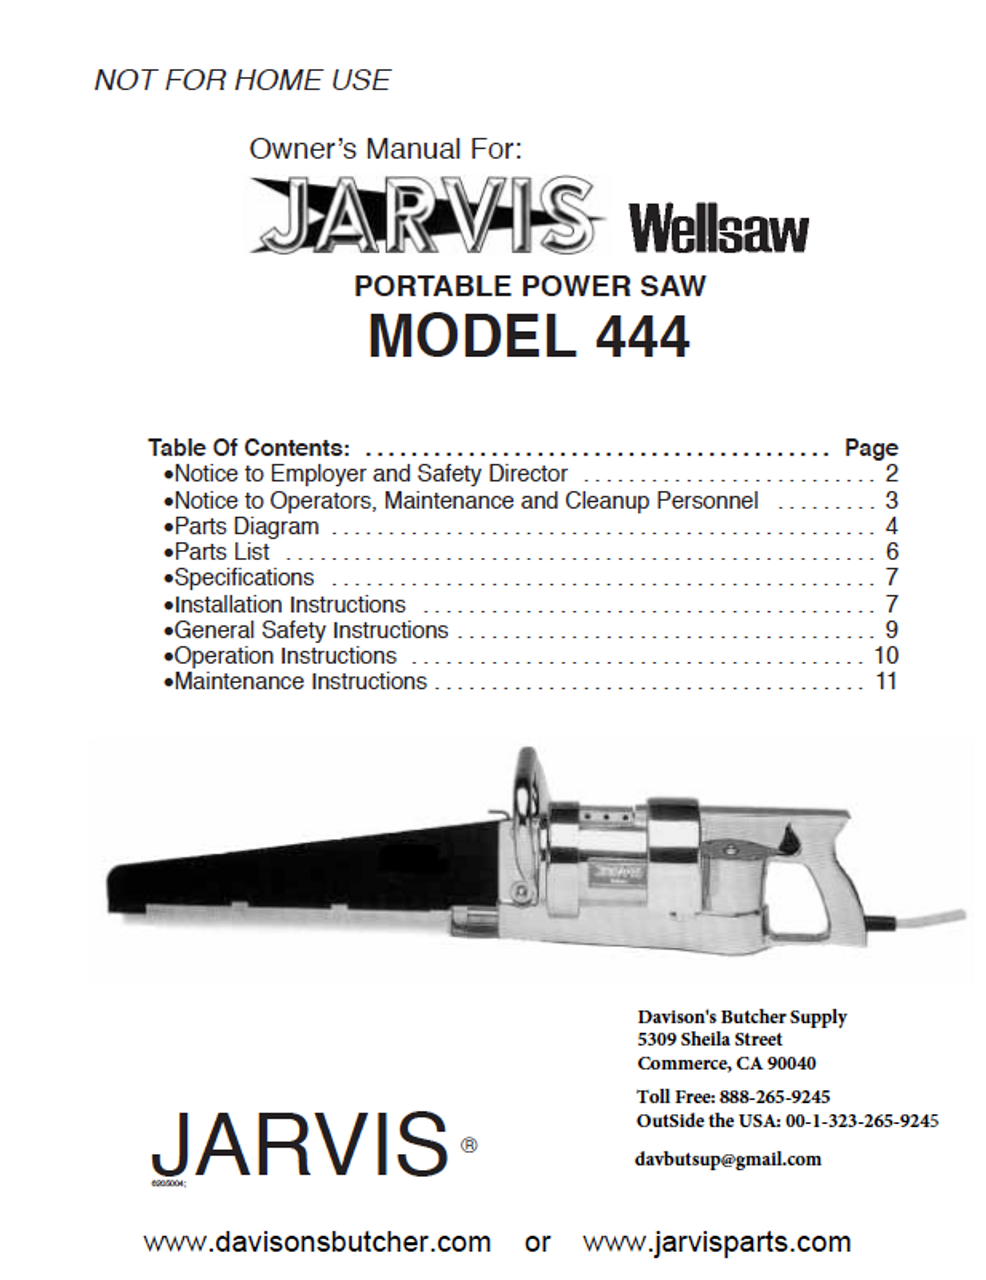 Jarvis Wellsaw Model 444 Parts List